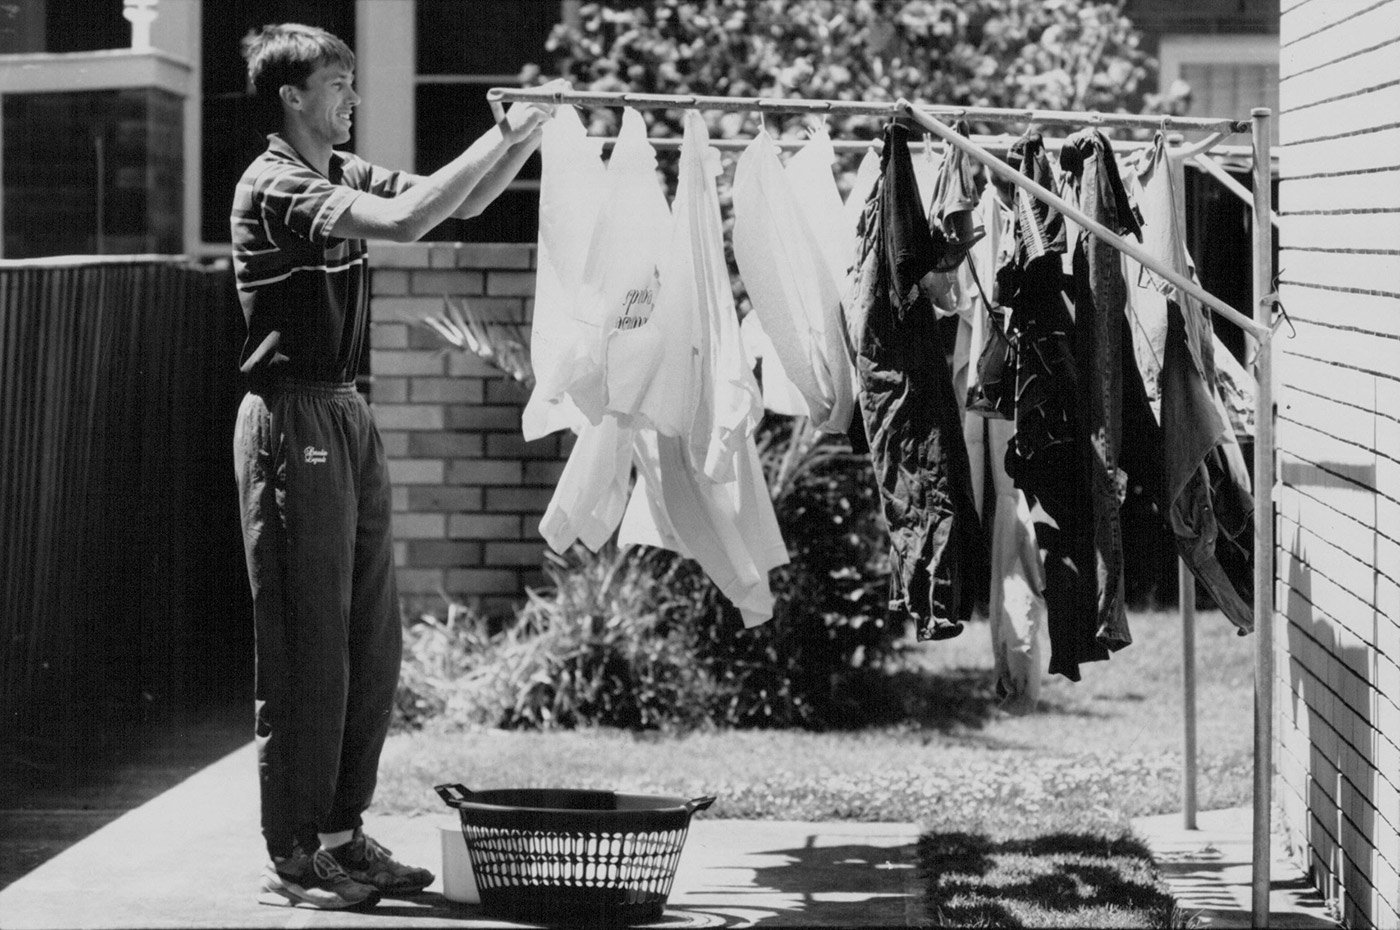 Of humble beginnings are monsters made: McGrath hangs up the washing after hearing of his call up for Australia, back in 1993